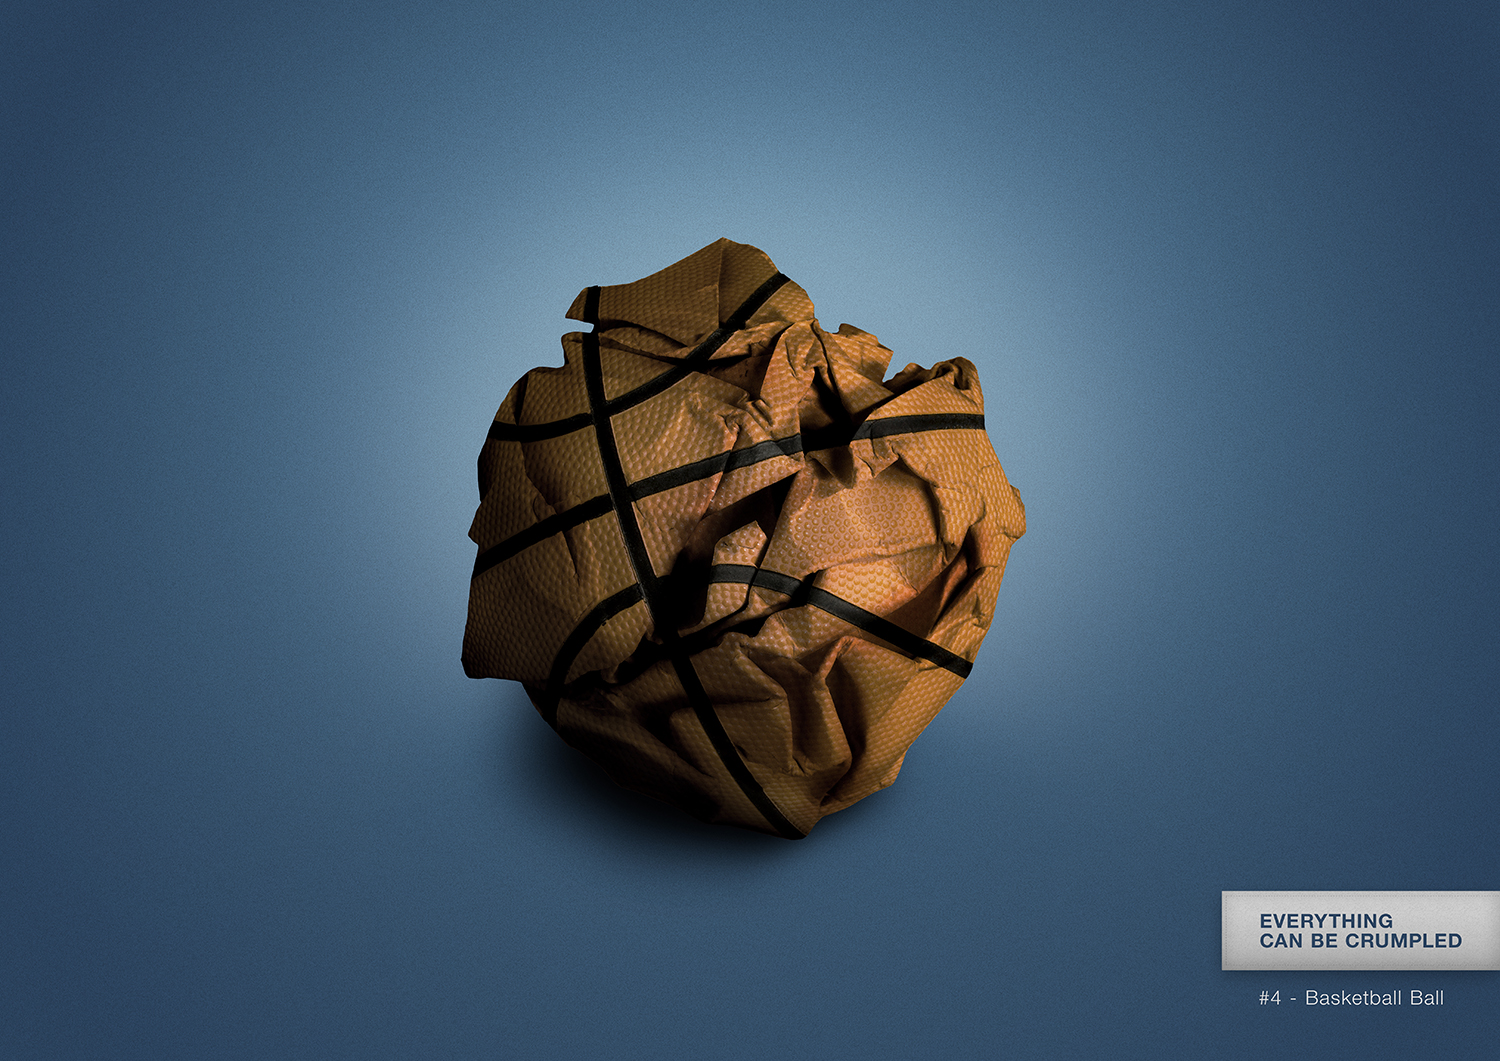 Everything can be crumpled - #4 Basketball Ball